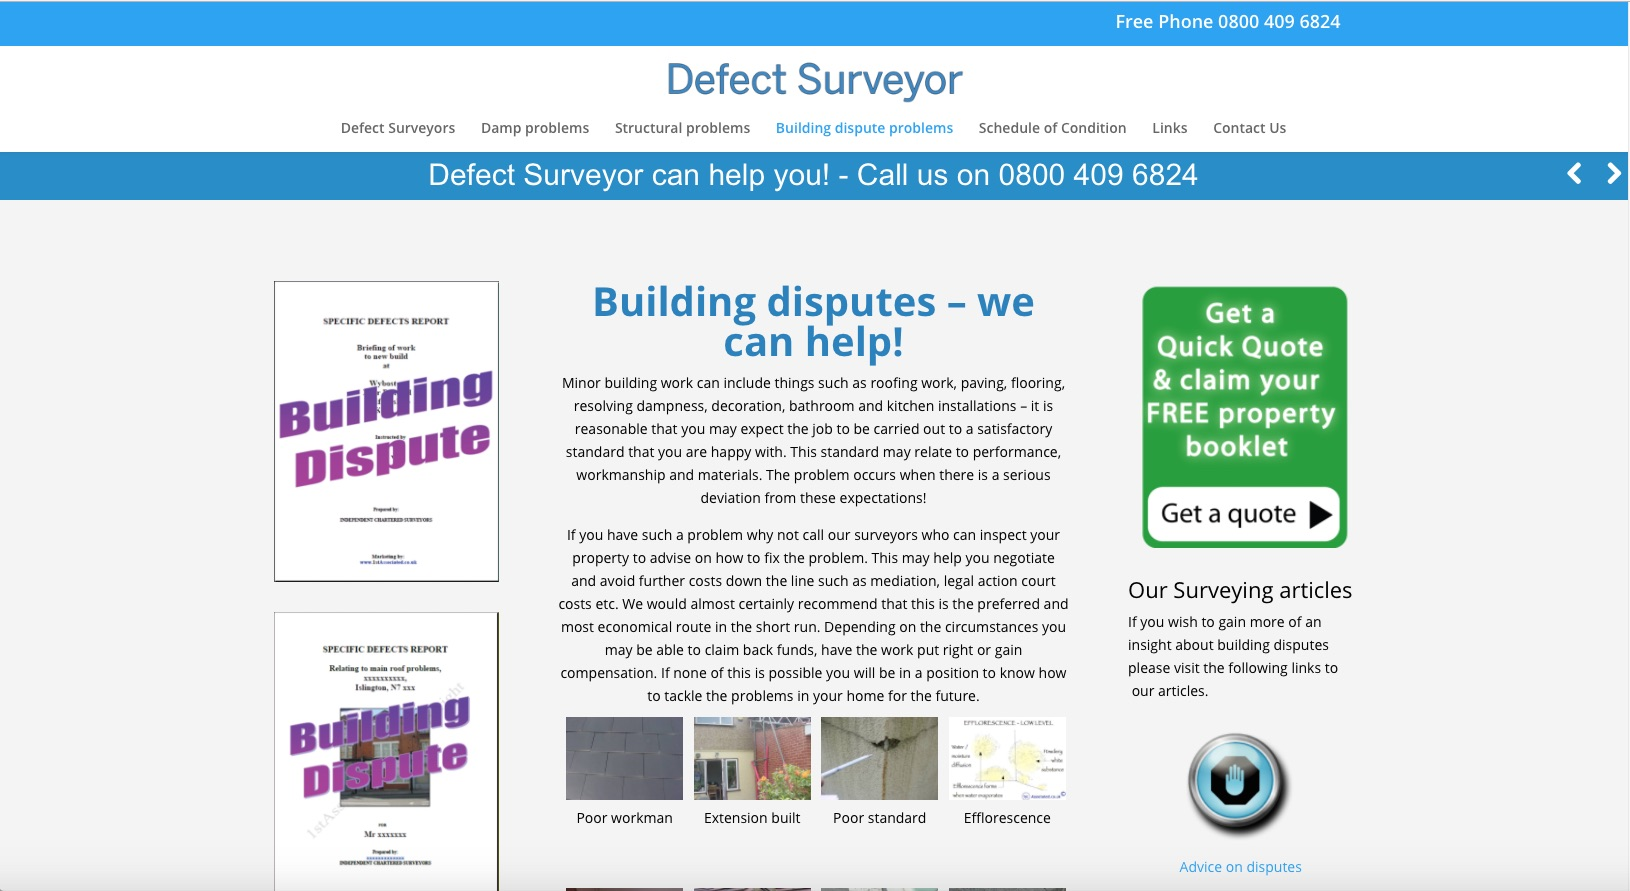 Defectsurveyor.co.uk - Building Dispute Problems